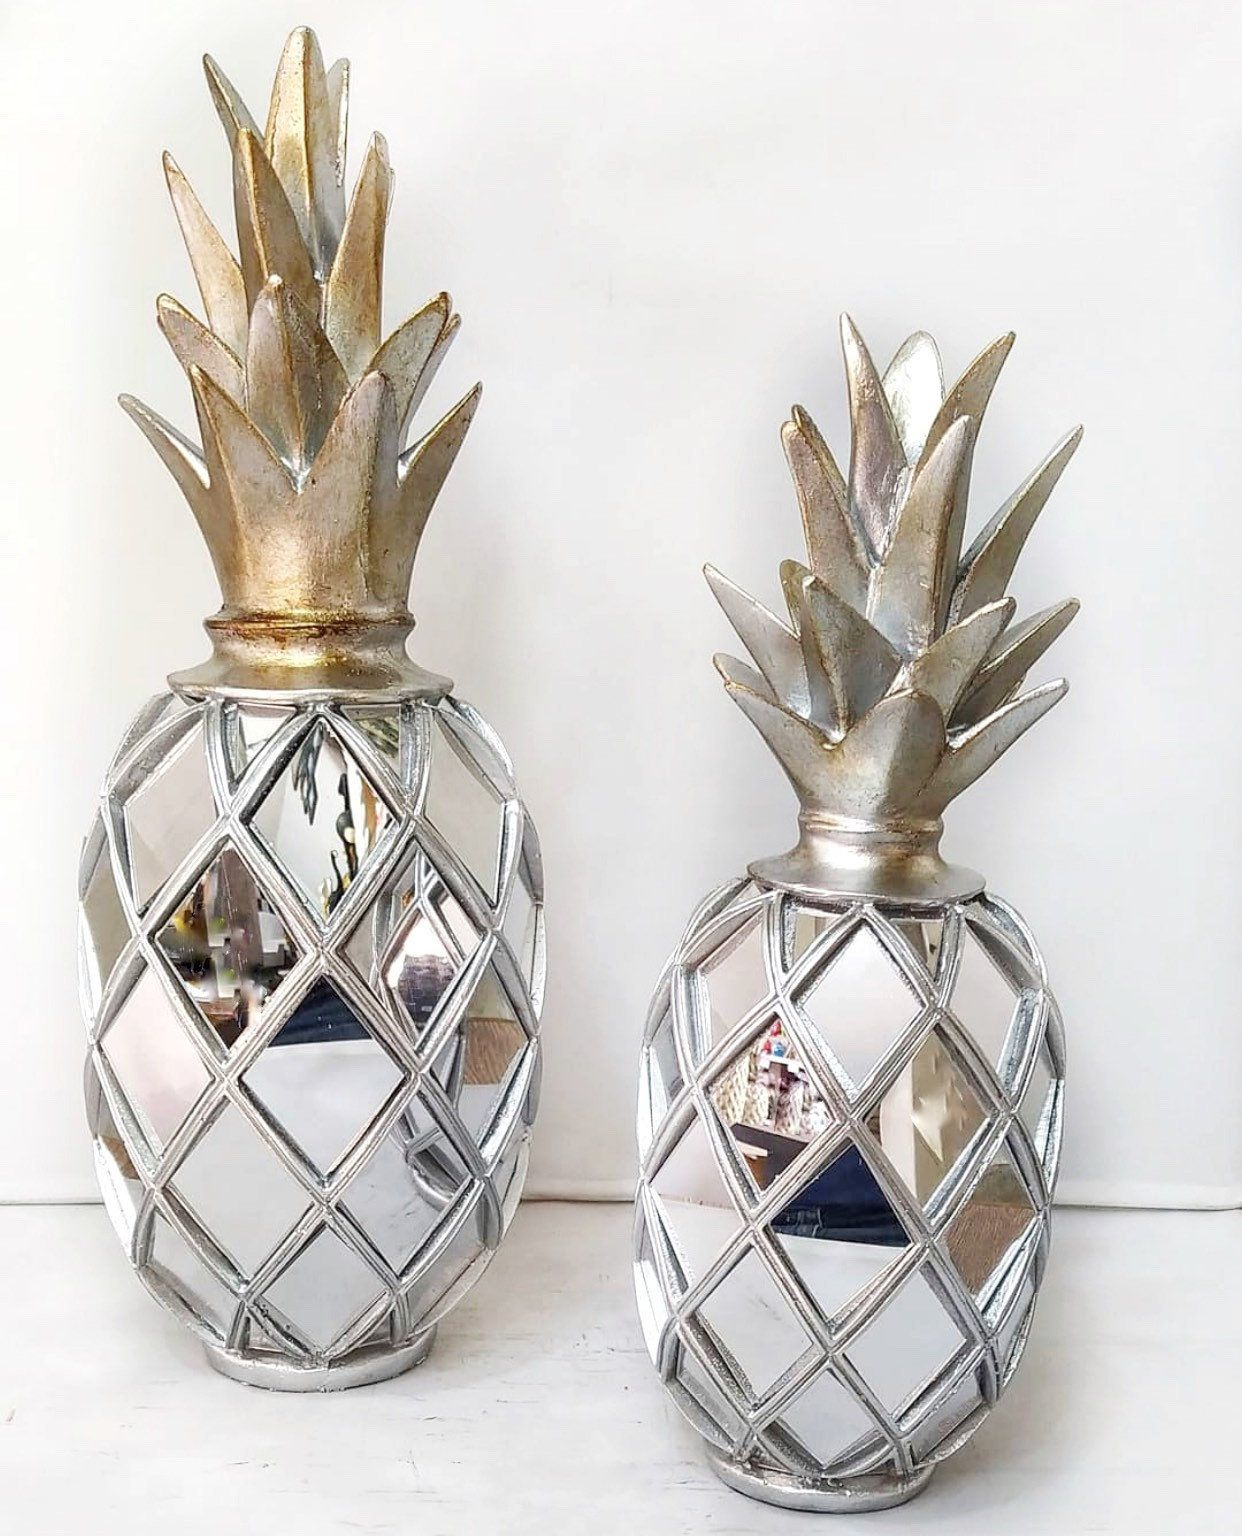 Silver Mirrored Pineapple Set Pineapple Object Pineapple Etsy Pineapple Decor Gold Pineapple Decor Pineapple Accessories